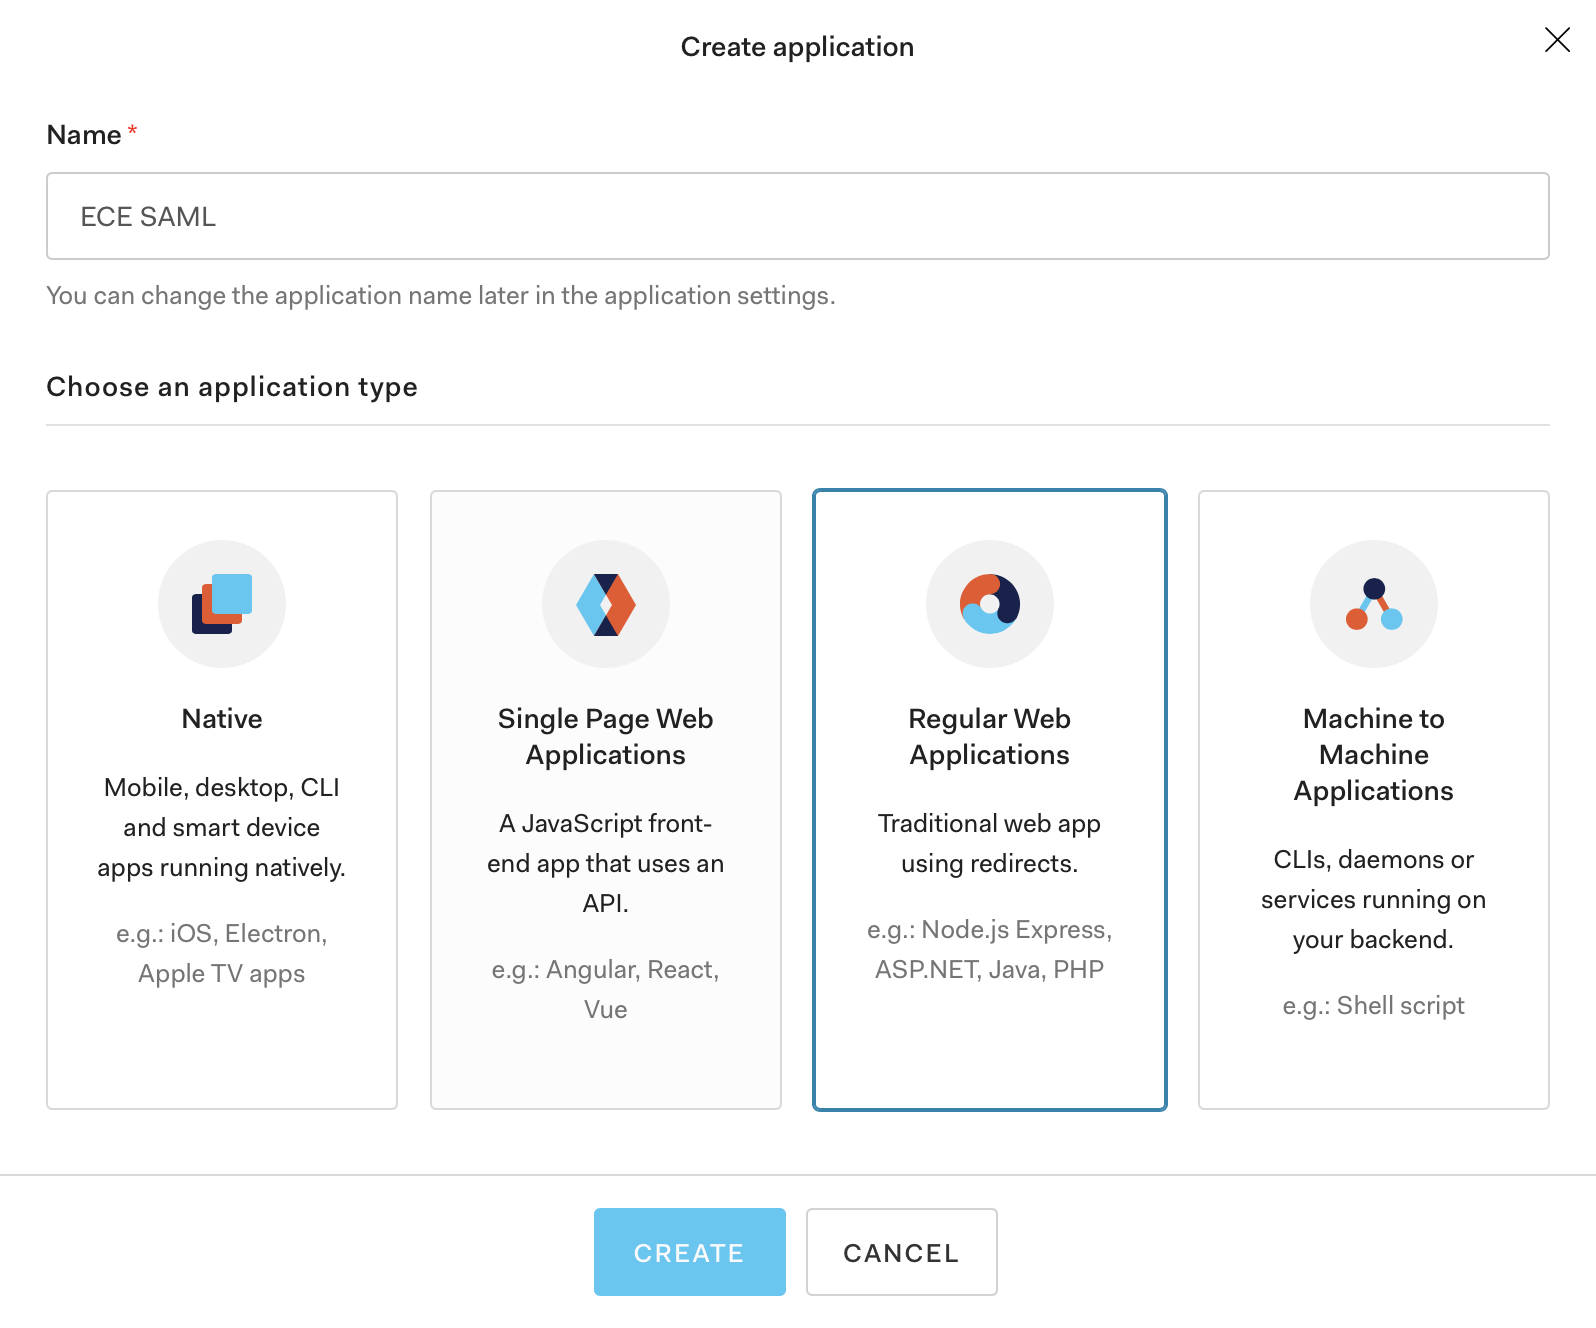 Enter a name for the new application, select Regular Web Applications, and click Create